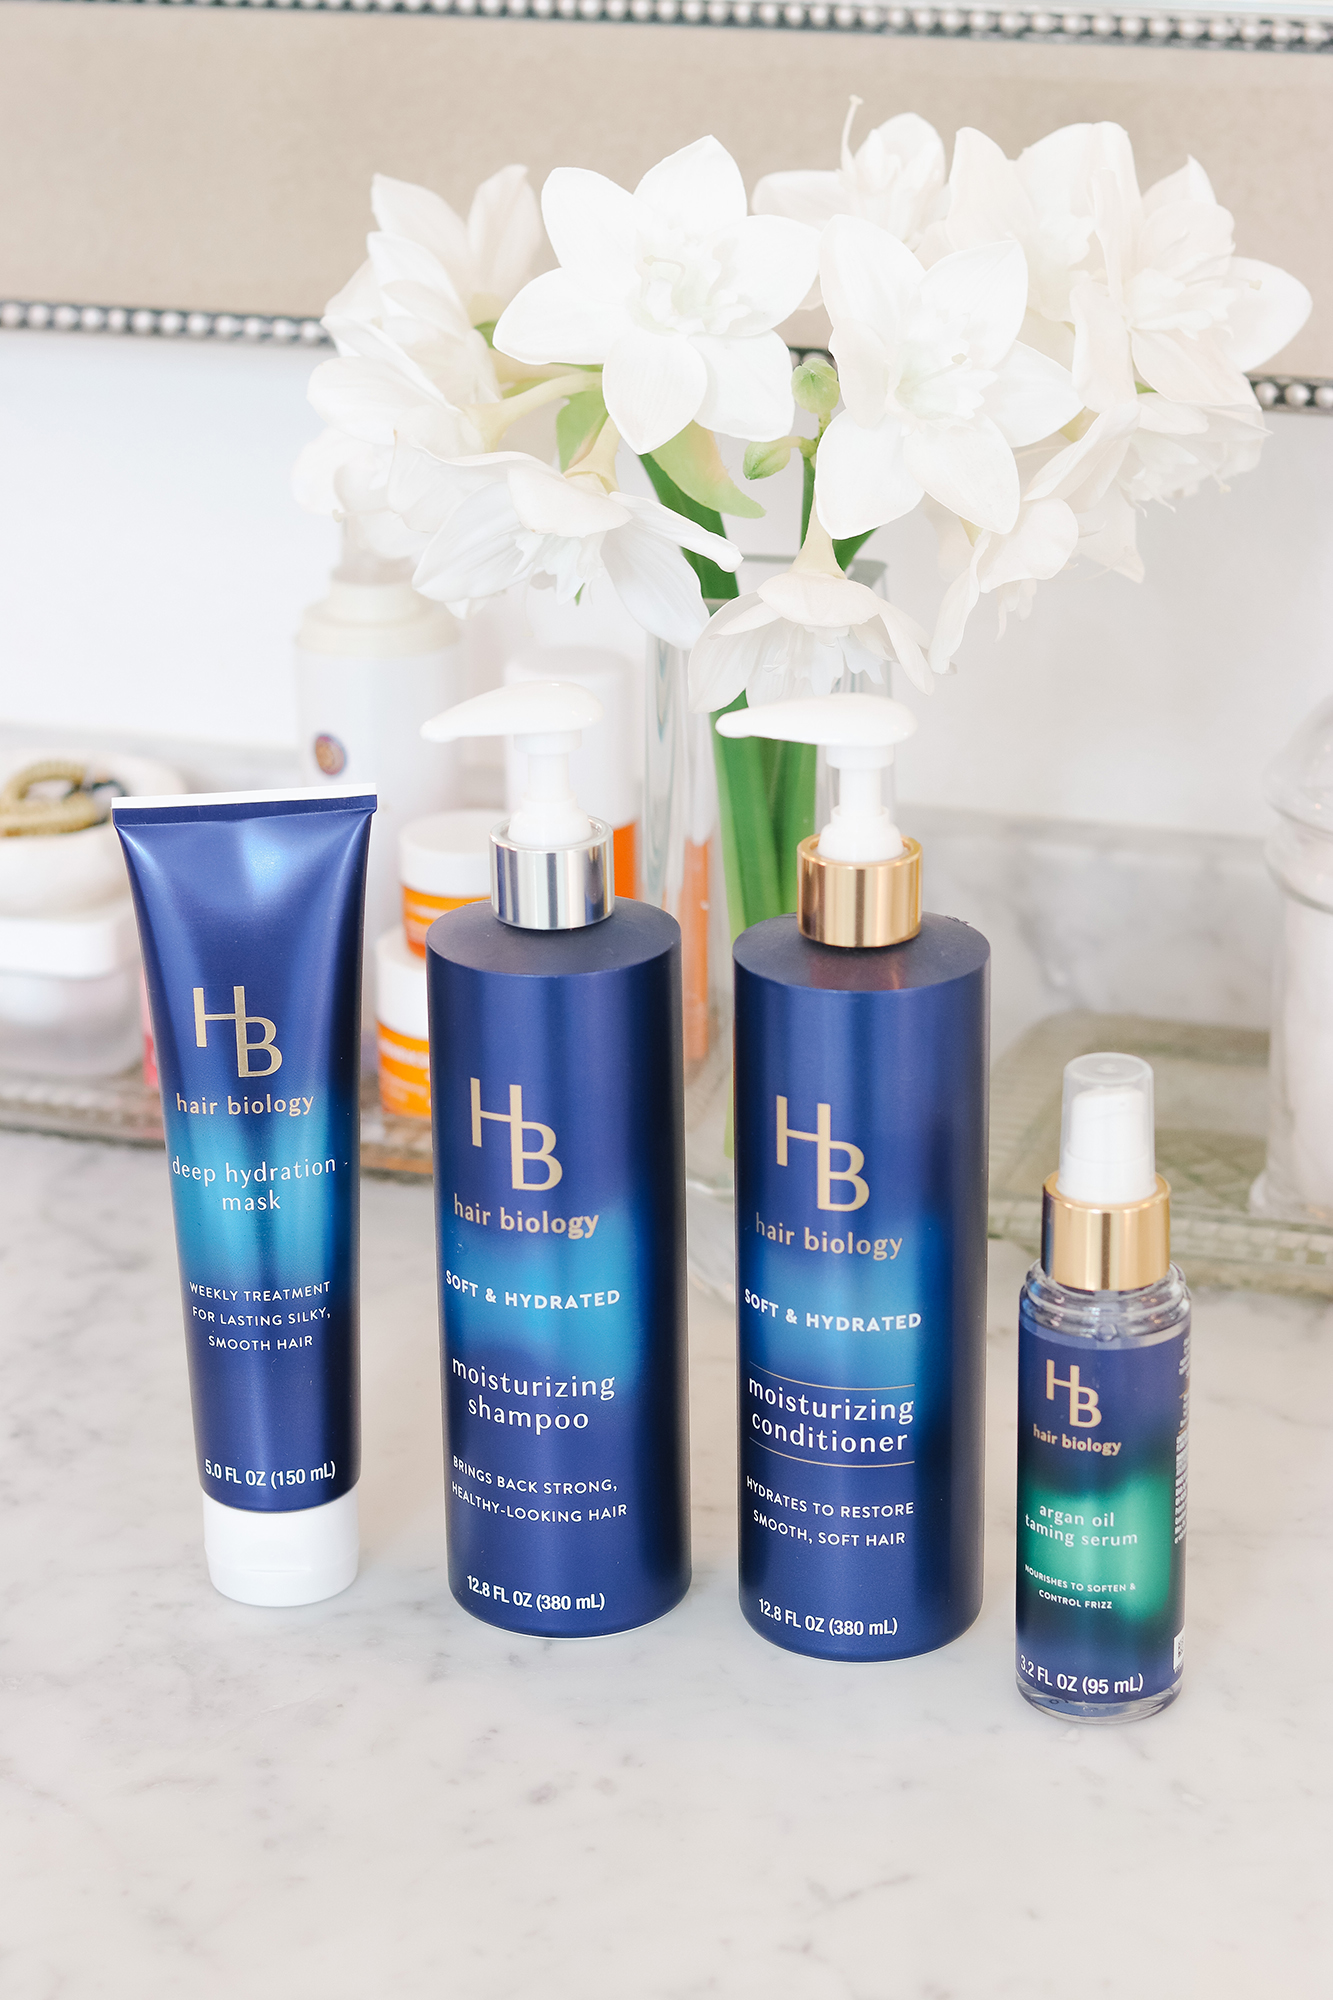 Hair Biology Review - Do these products really work for women who are 45+? A complete review on their Soft + Hydrated line.